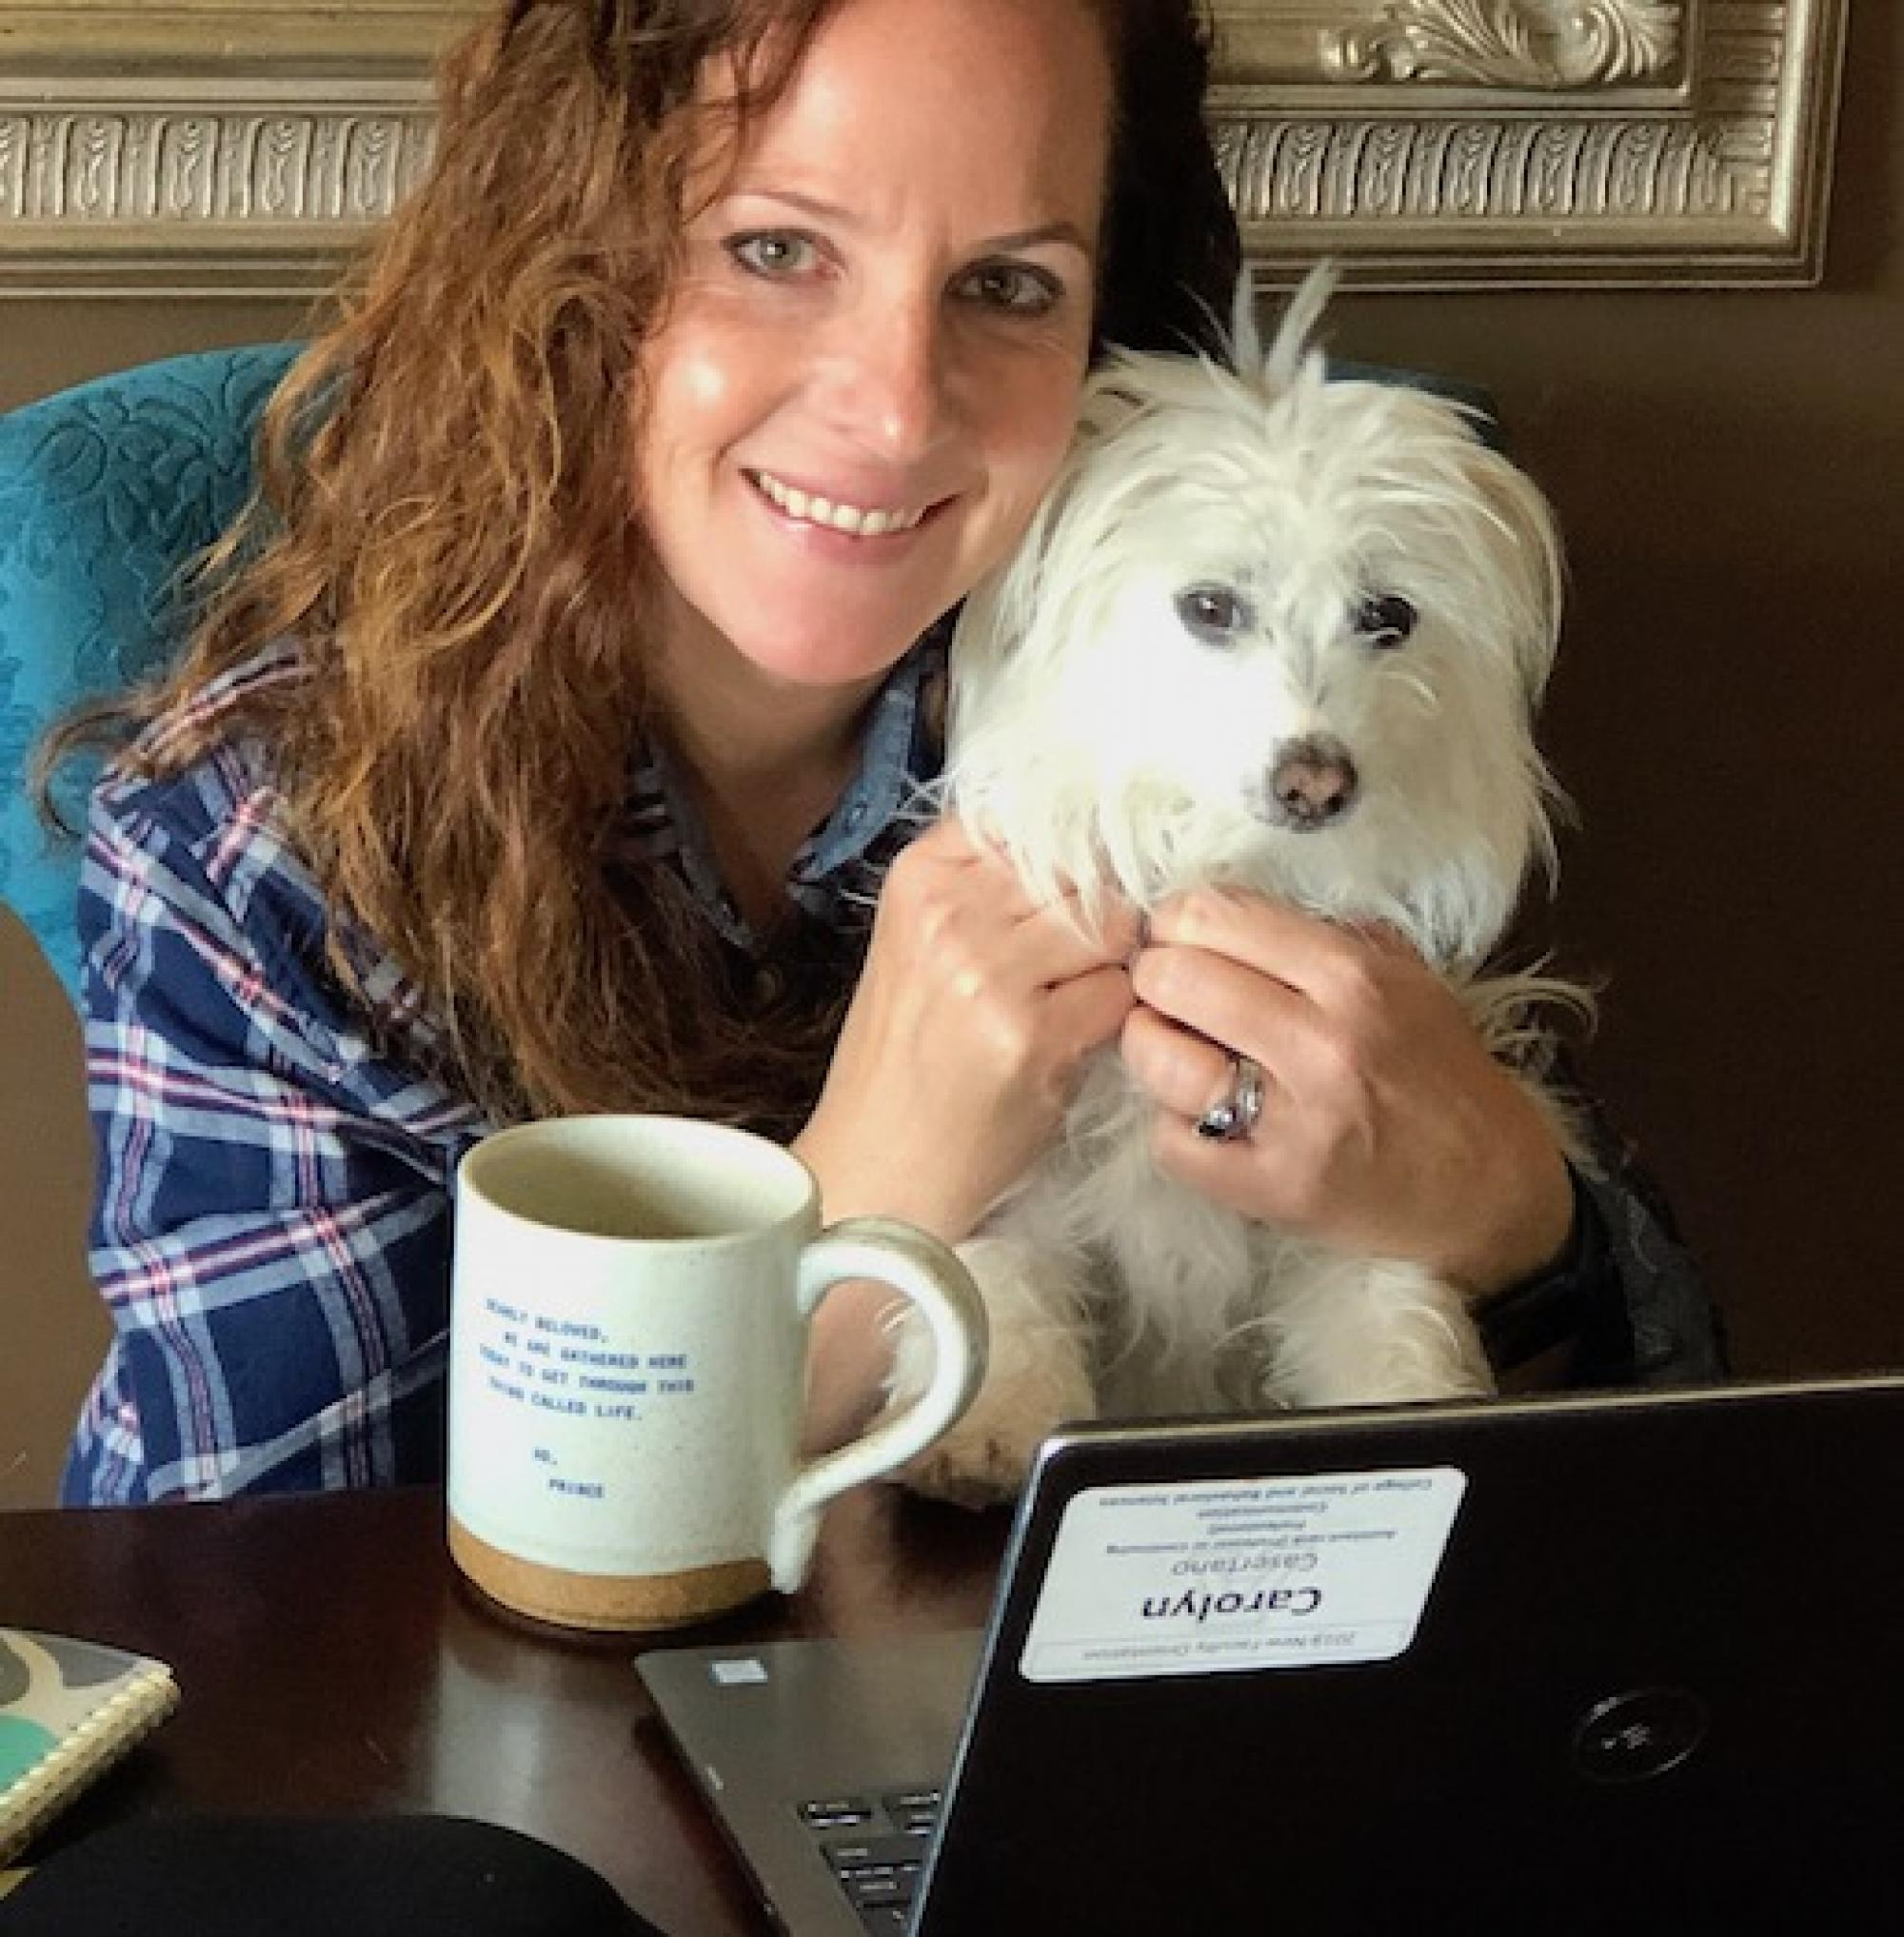 "Carolyn preparing for virtual office hours with help from Cora. Mug with favorite lyric from Prince: 'Dearly beloved, we are gathered here today to get through this thing called life.'"" – Carolyn Casertano, assistant professor of practice in the Departmen"